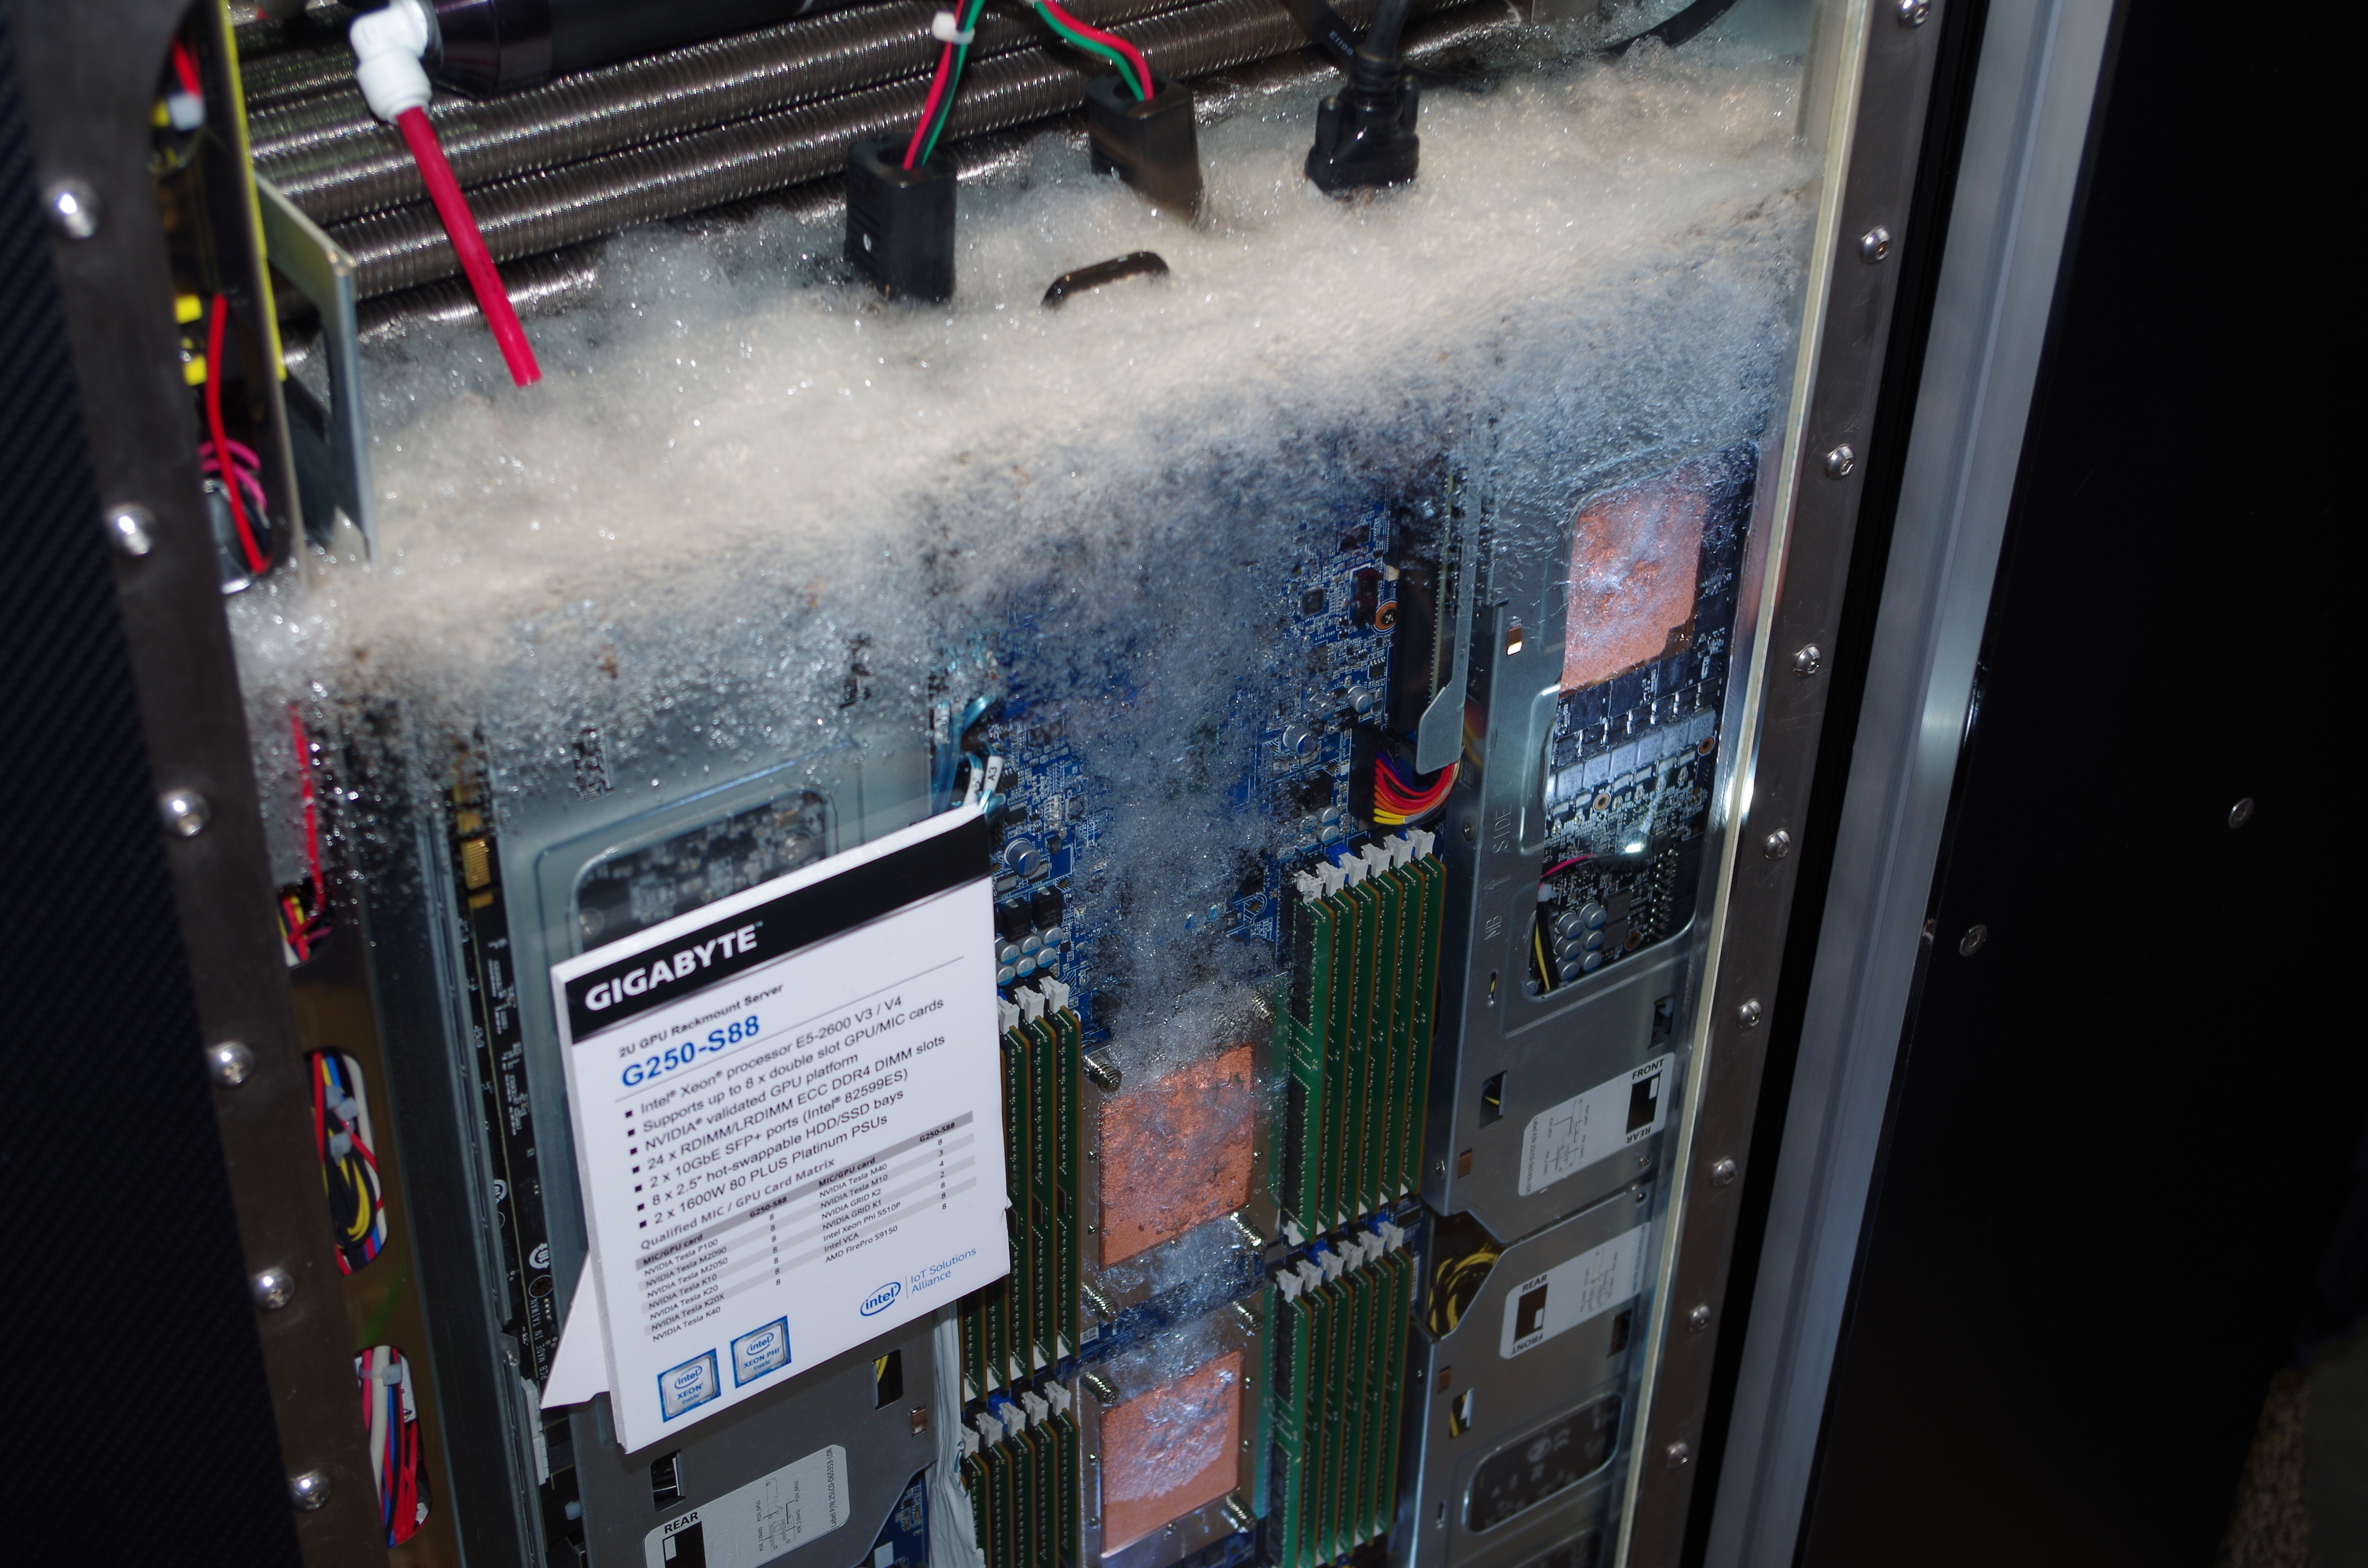 GIGABYTE Server Shows Two-Phase Immersion Liquid Cooling on a 2U GPU